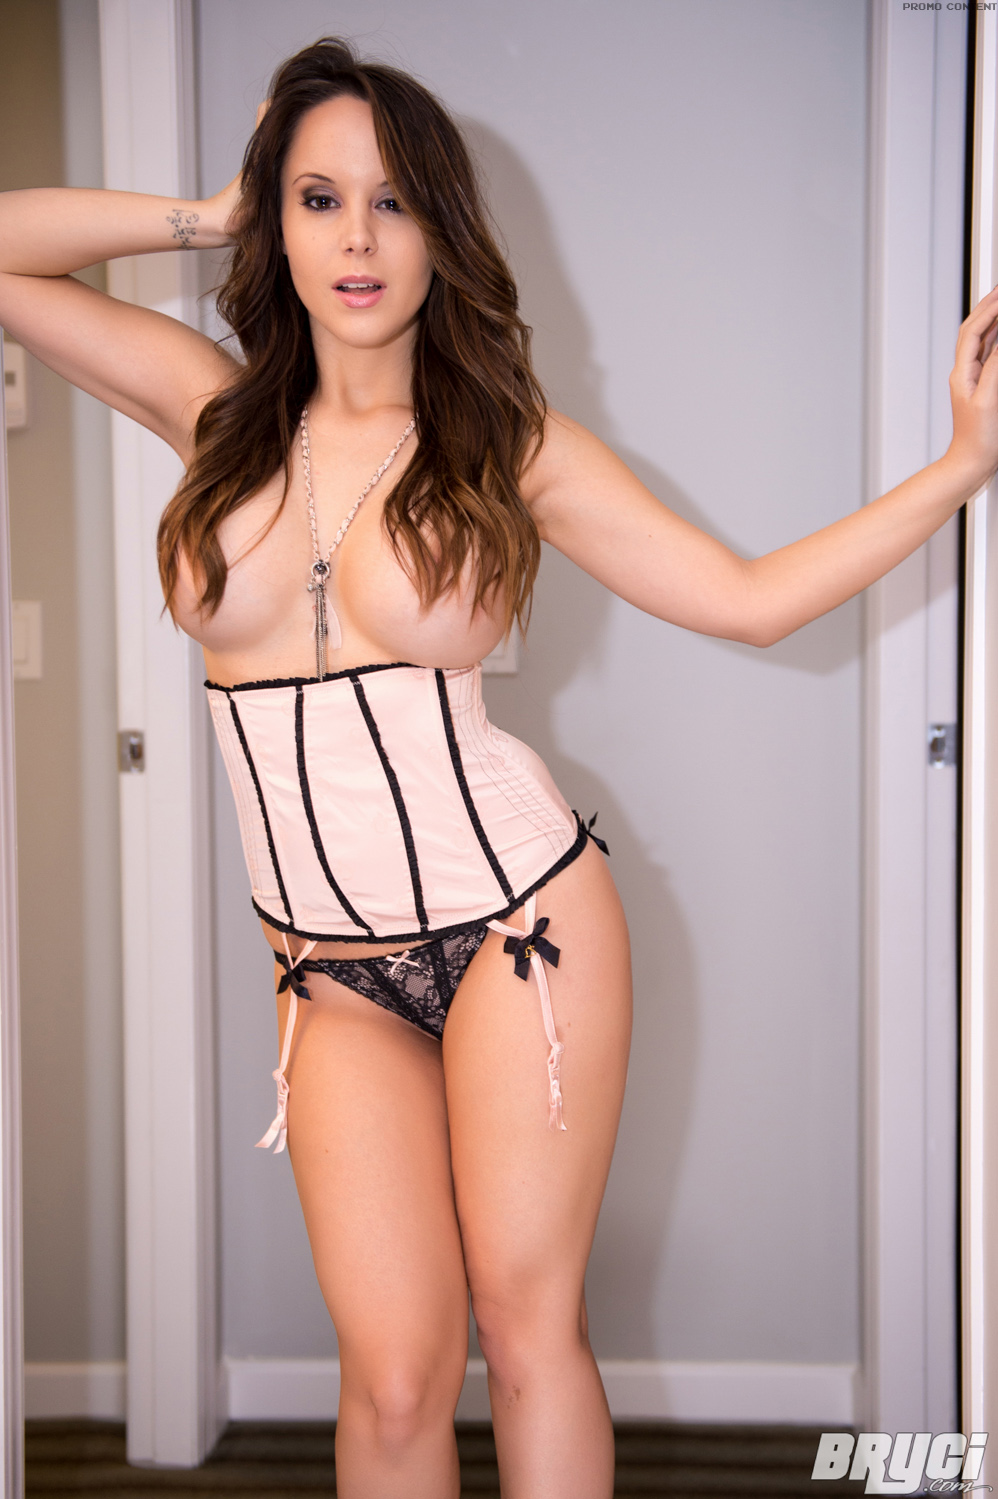 Her corset on with her fuck